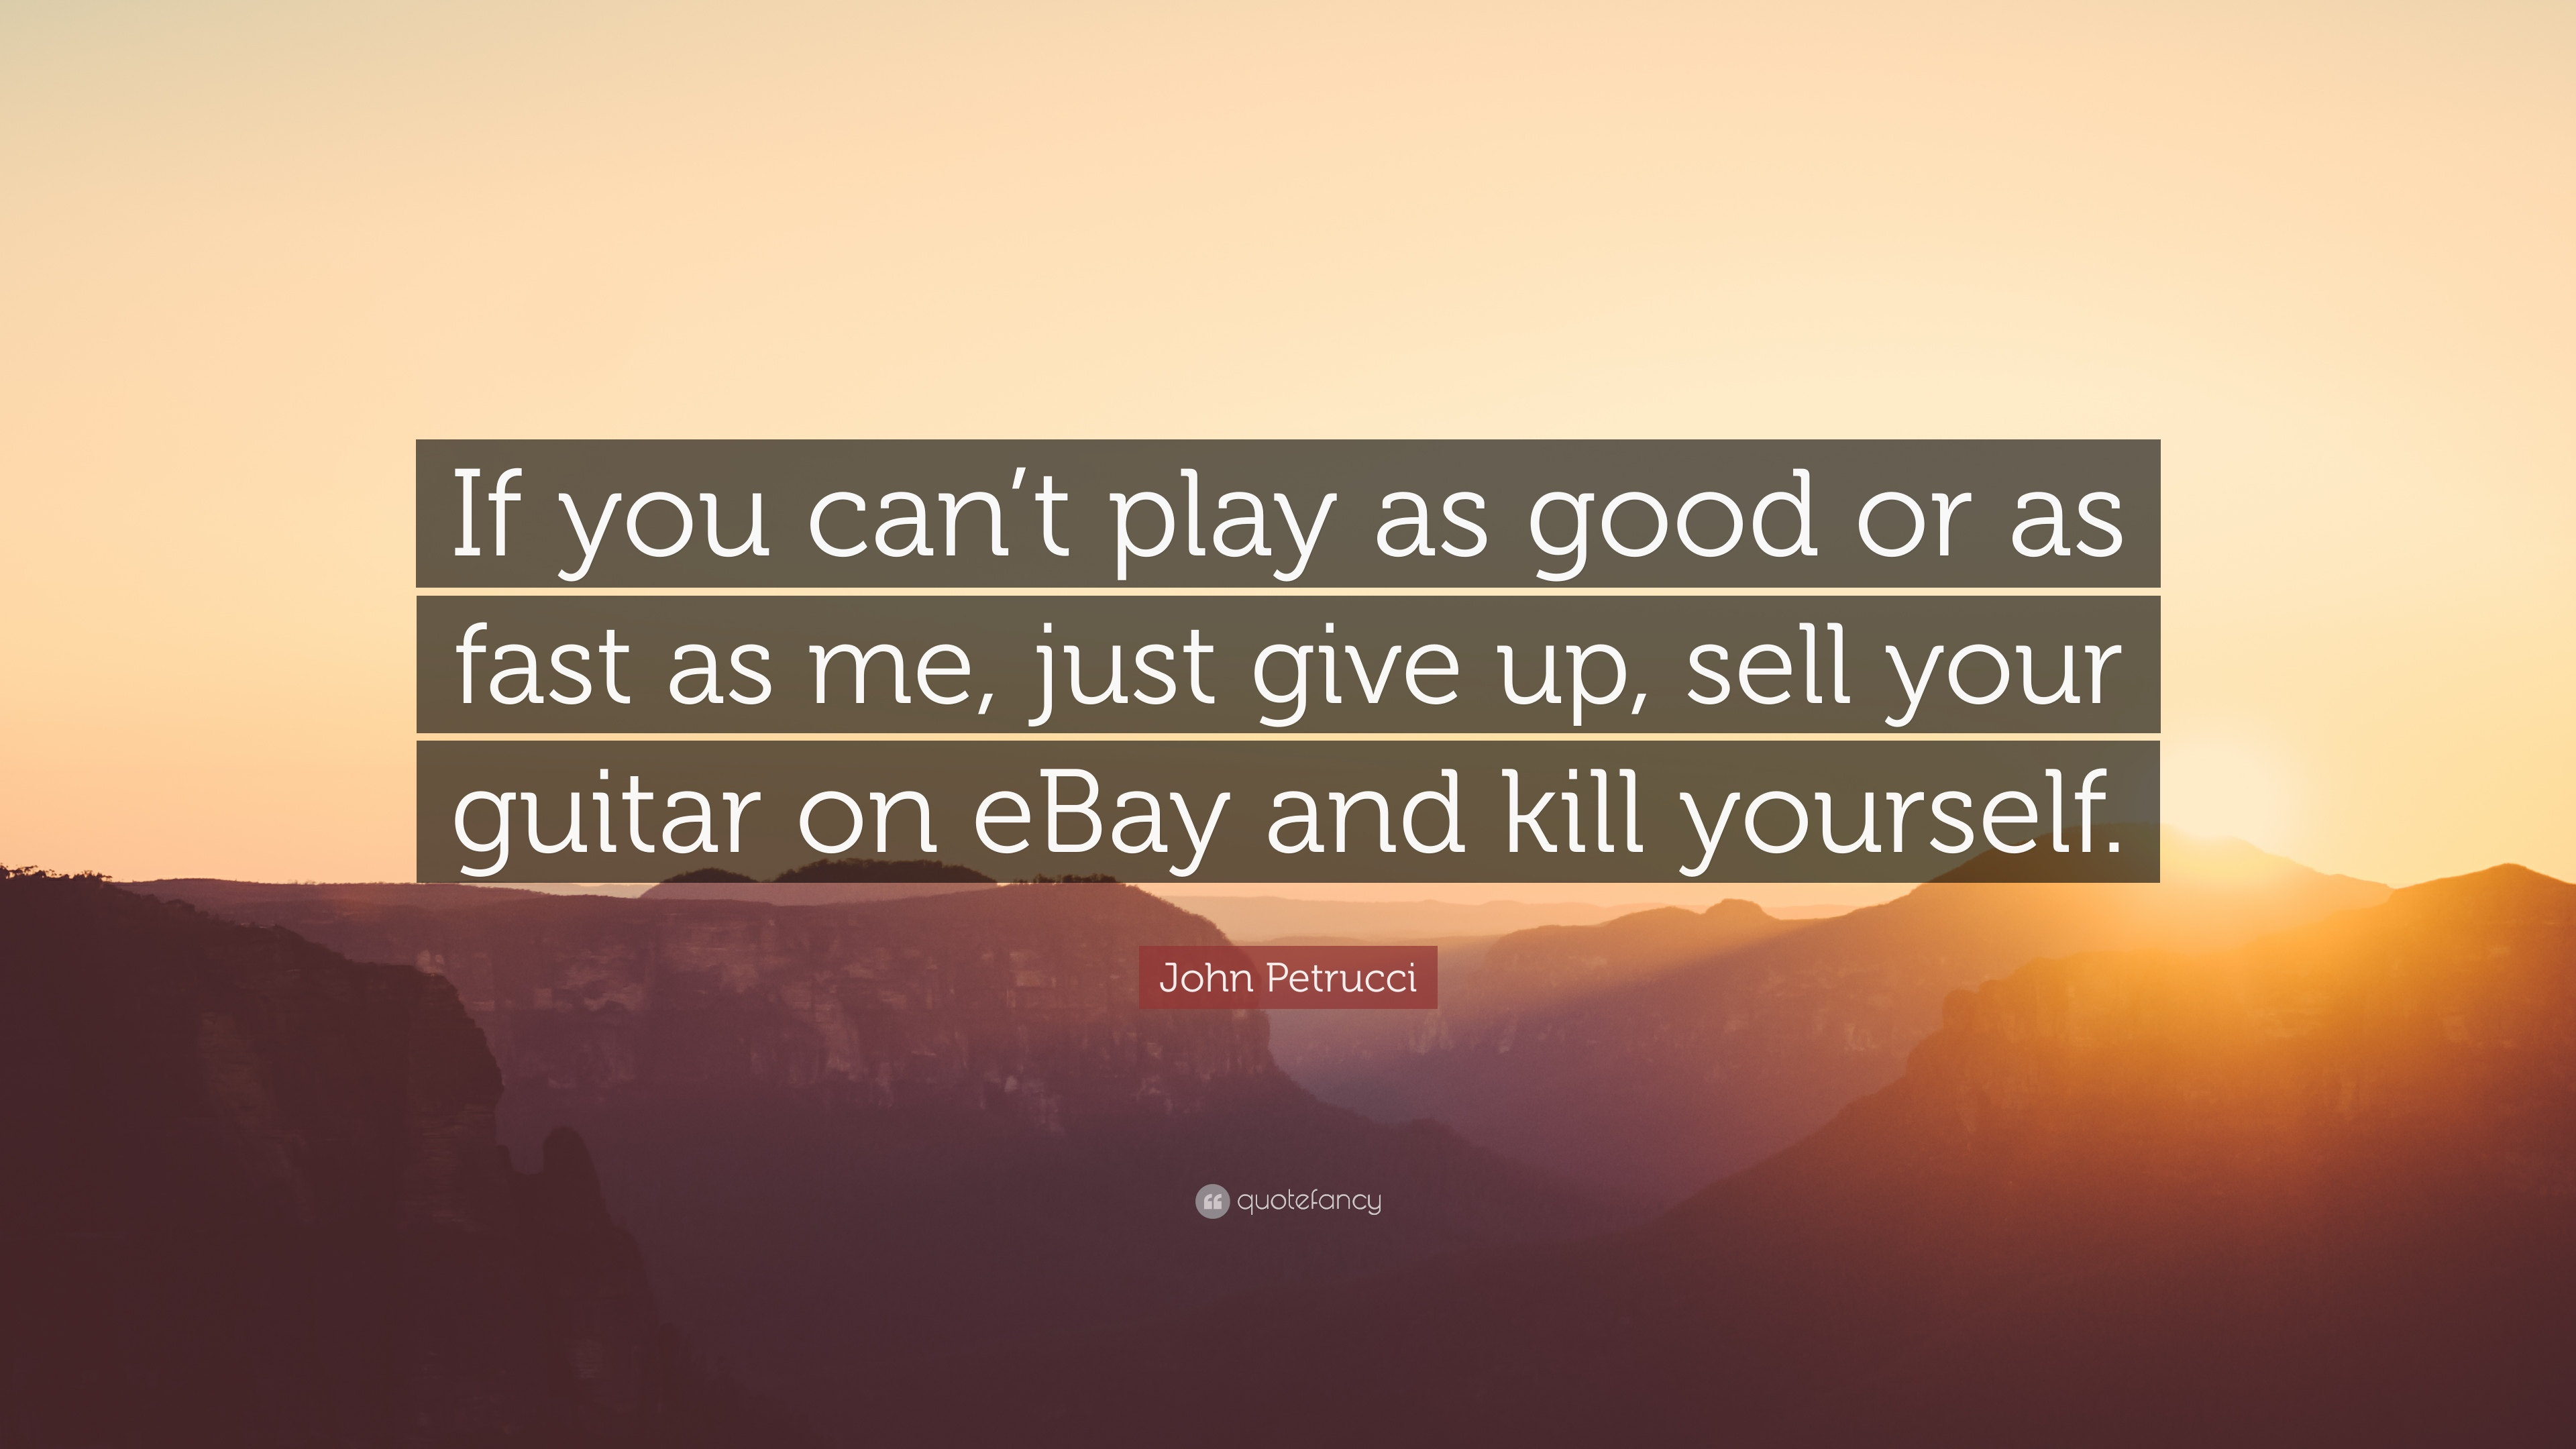 Quotes About Play John Petrucci Quotes 57 Wallpapers  Quotefancy